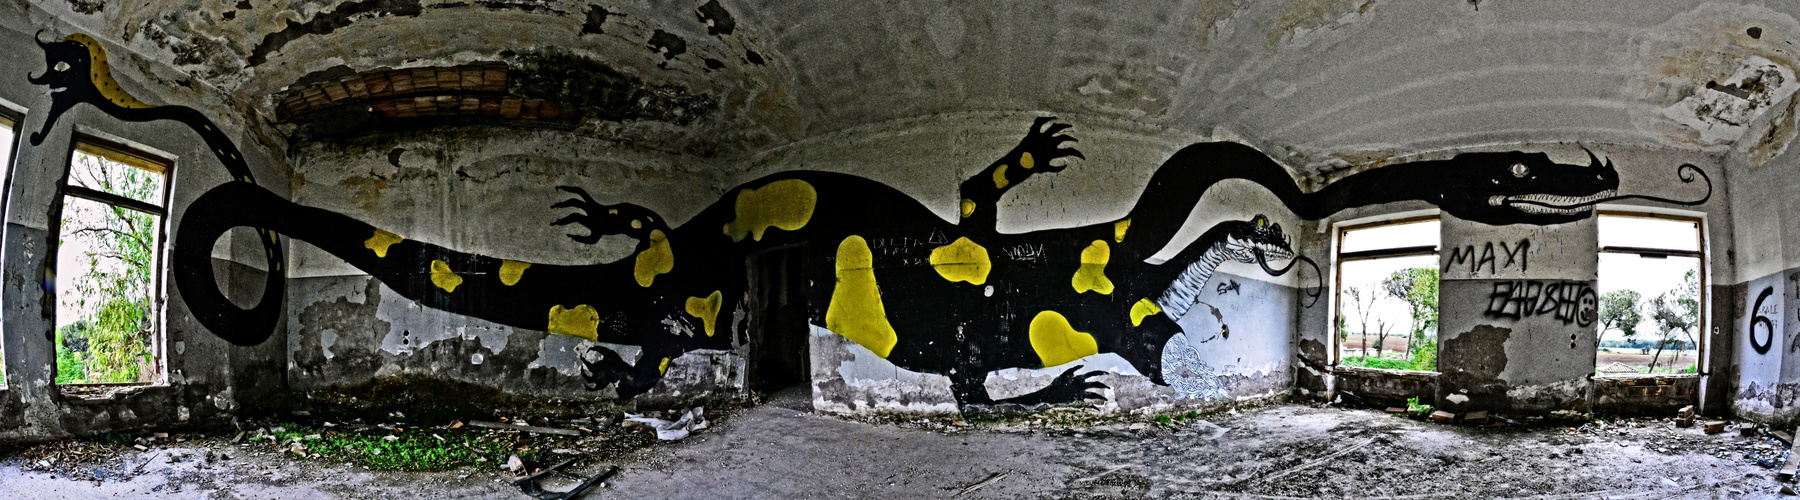 Abandoned the Criminally Insane in Rome